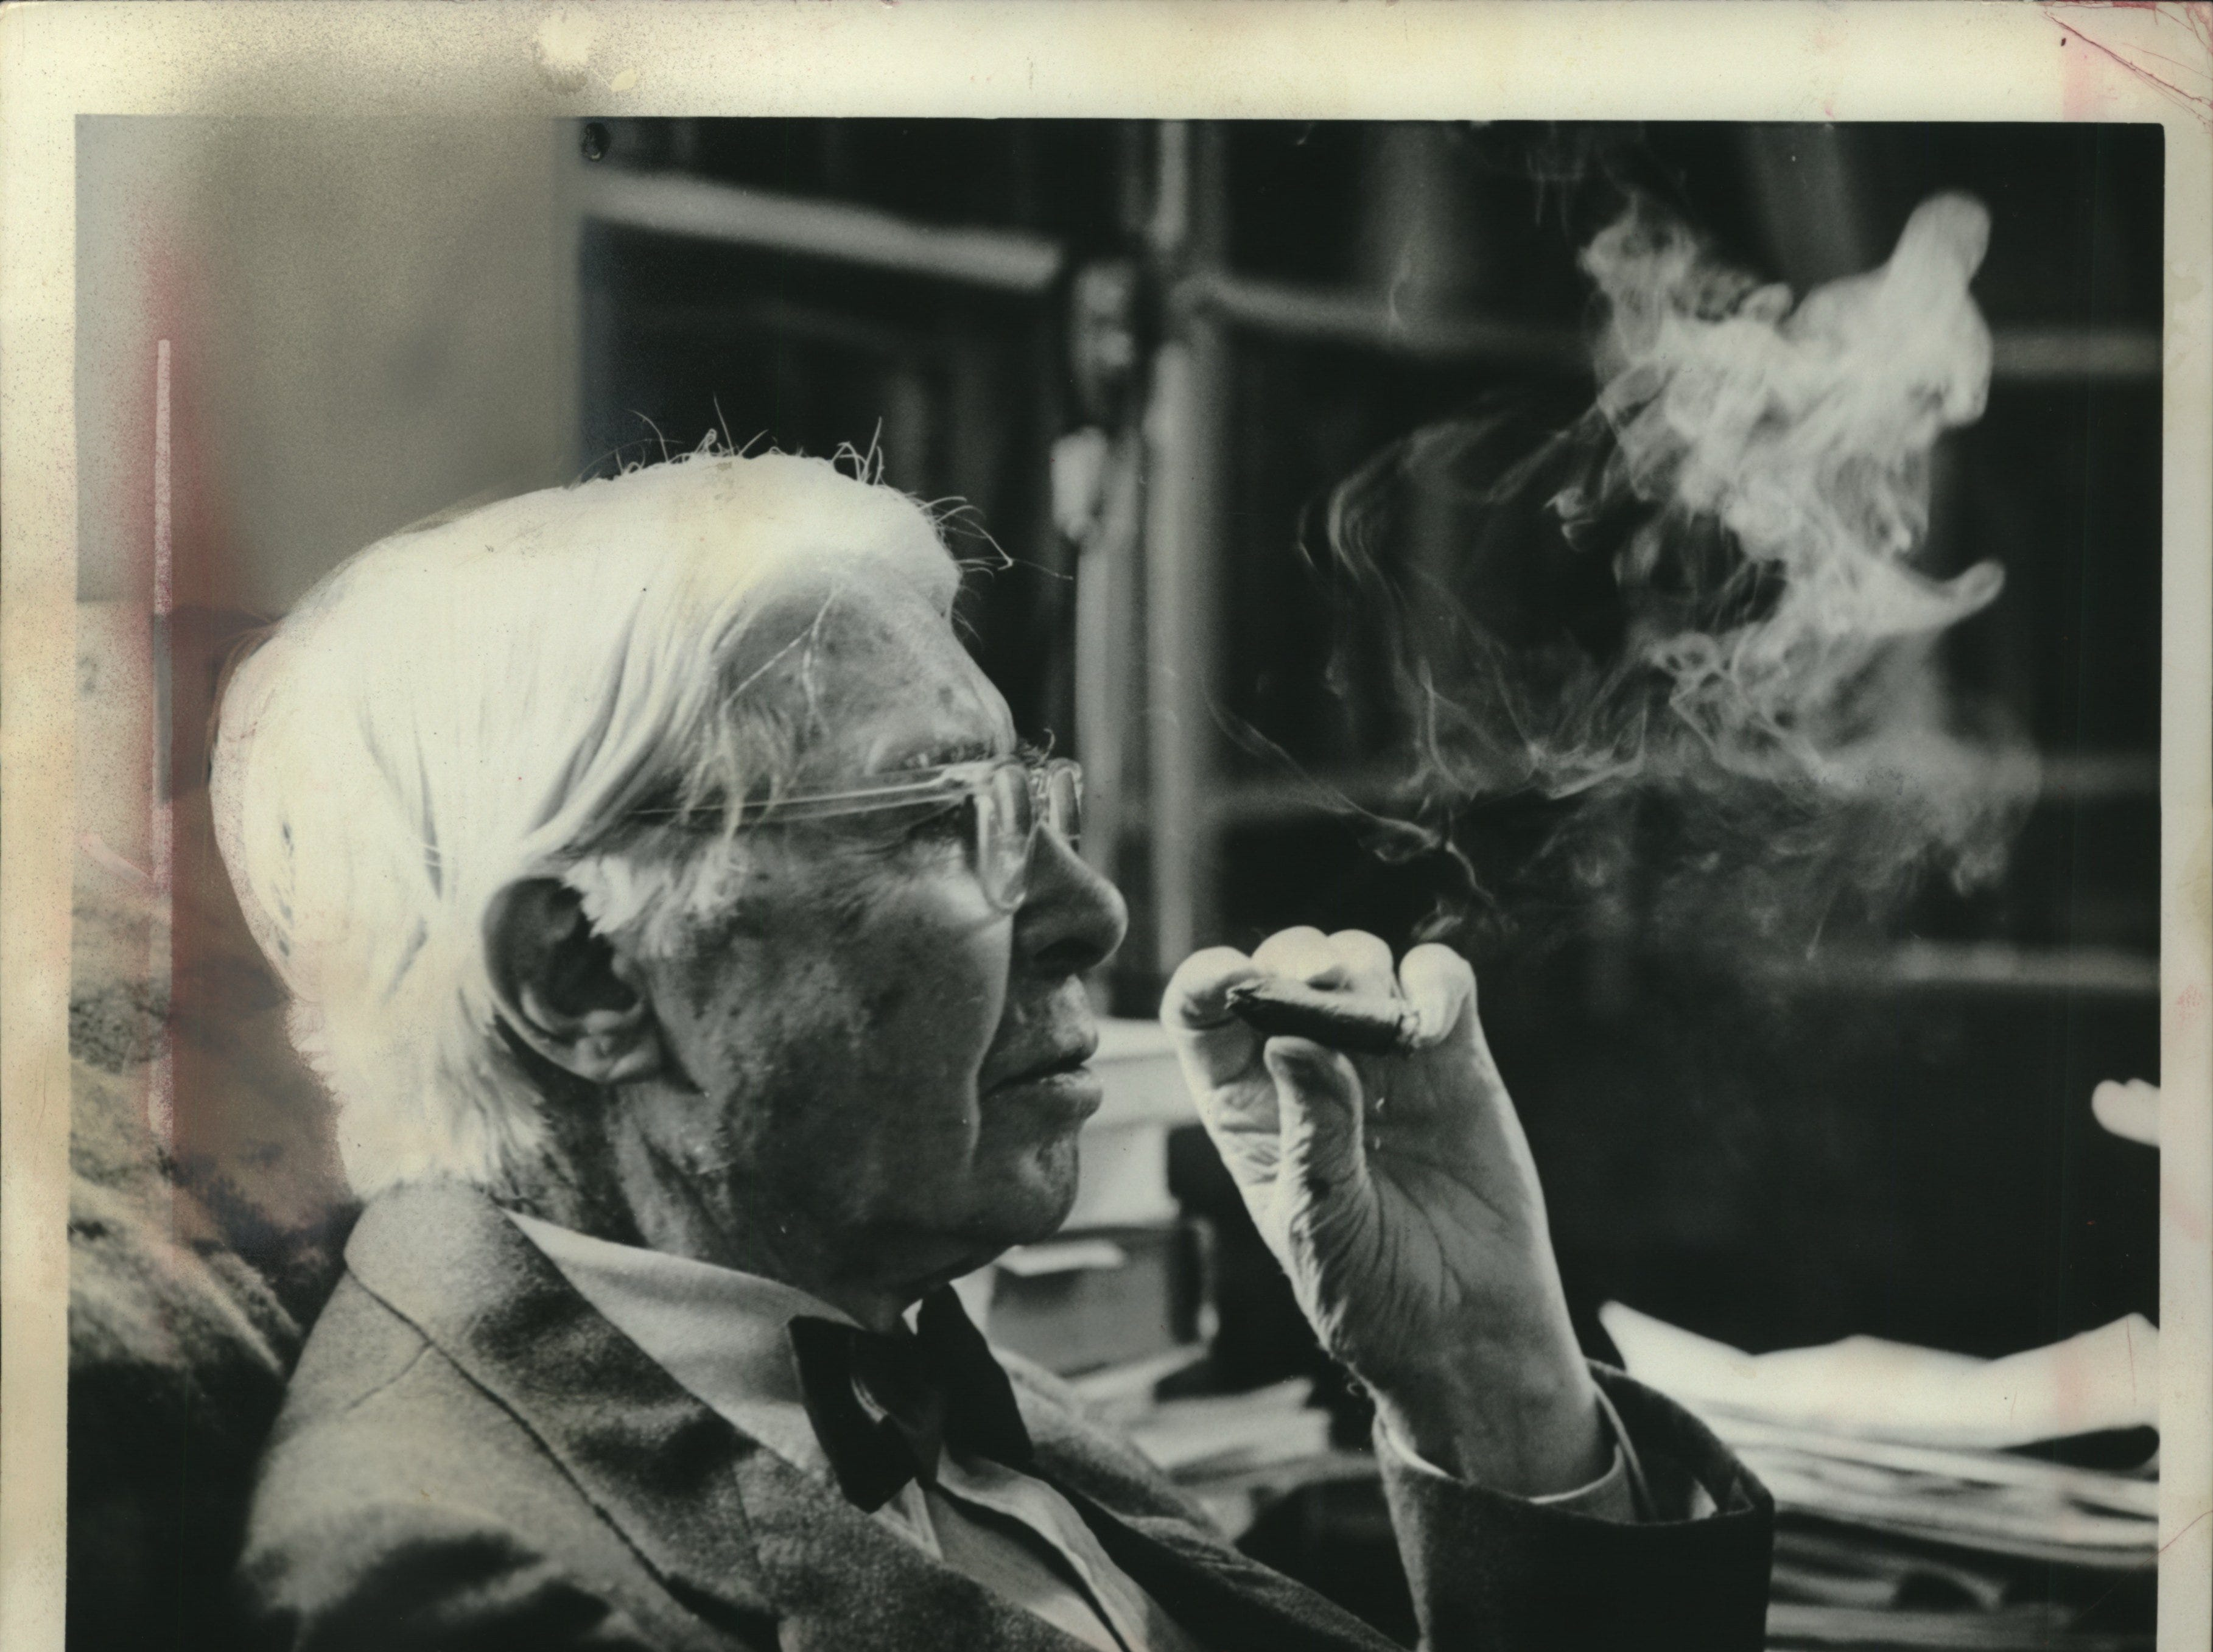 "1963: Poet Carl Sandburg spent five of his earlier years in Wisconsin. He married Lilian Strechen of Menomonee Falls, whose brother Edward, was to become a famous photographer. During that period, he worked on three Milwaukee newspapers, including The Milwaukee Journal. In 1910 Sandburg became secretary to Social-Democrat Emil Seidel when he became mayor. Two years later he moved on to Chicago; his book., ""Chicago Poems,"" was the beginning of literary fame and fortune."